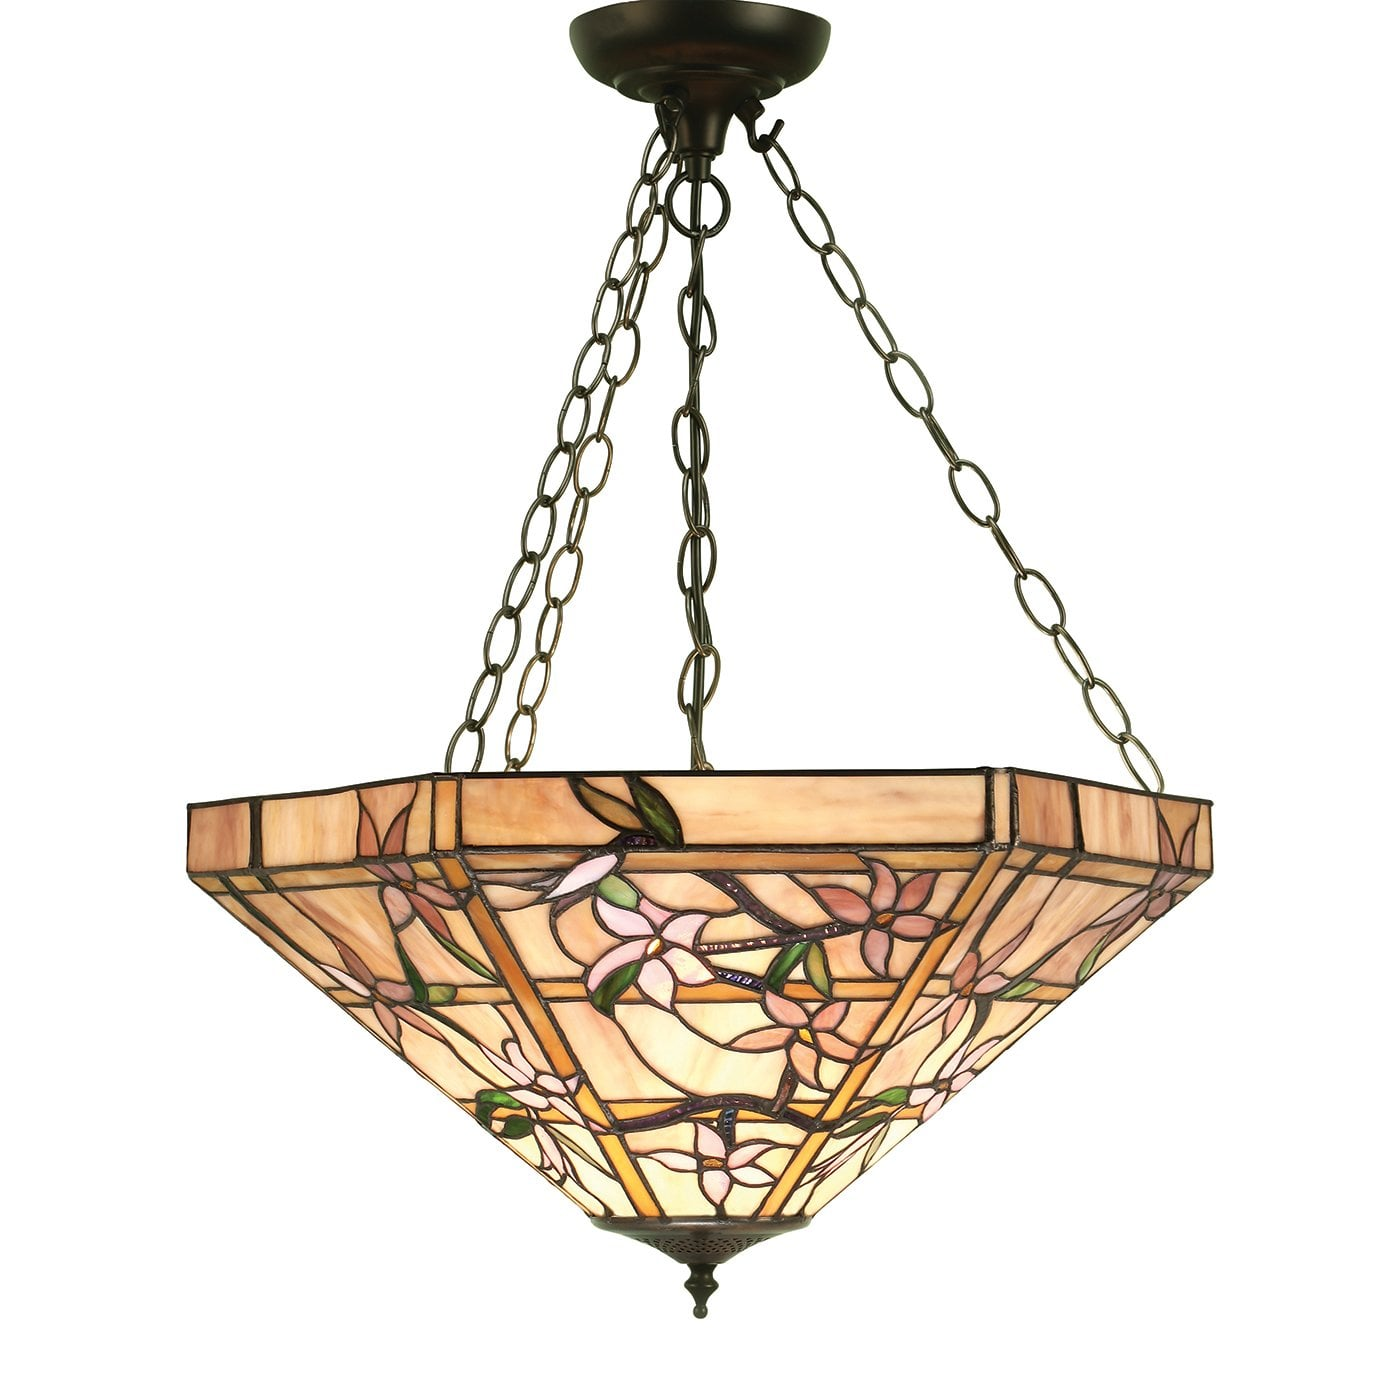 Interiors 1900 64019 Clematis Large inverted 3lt pendant, Tiffany